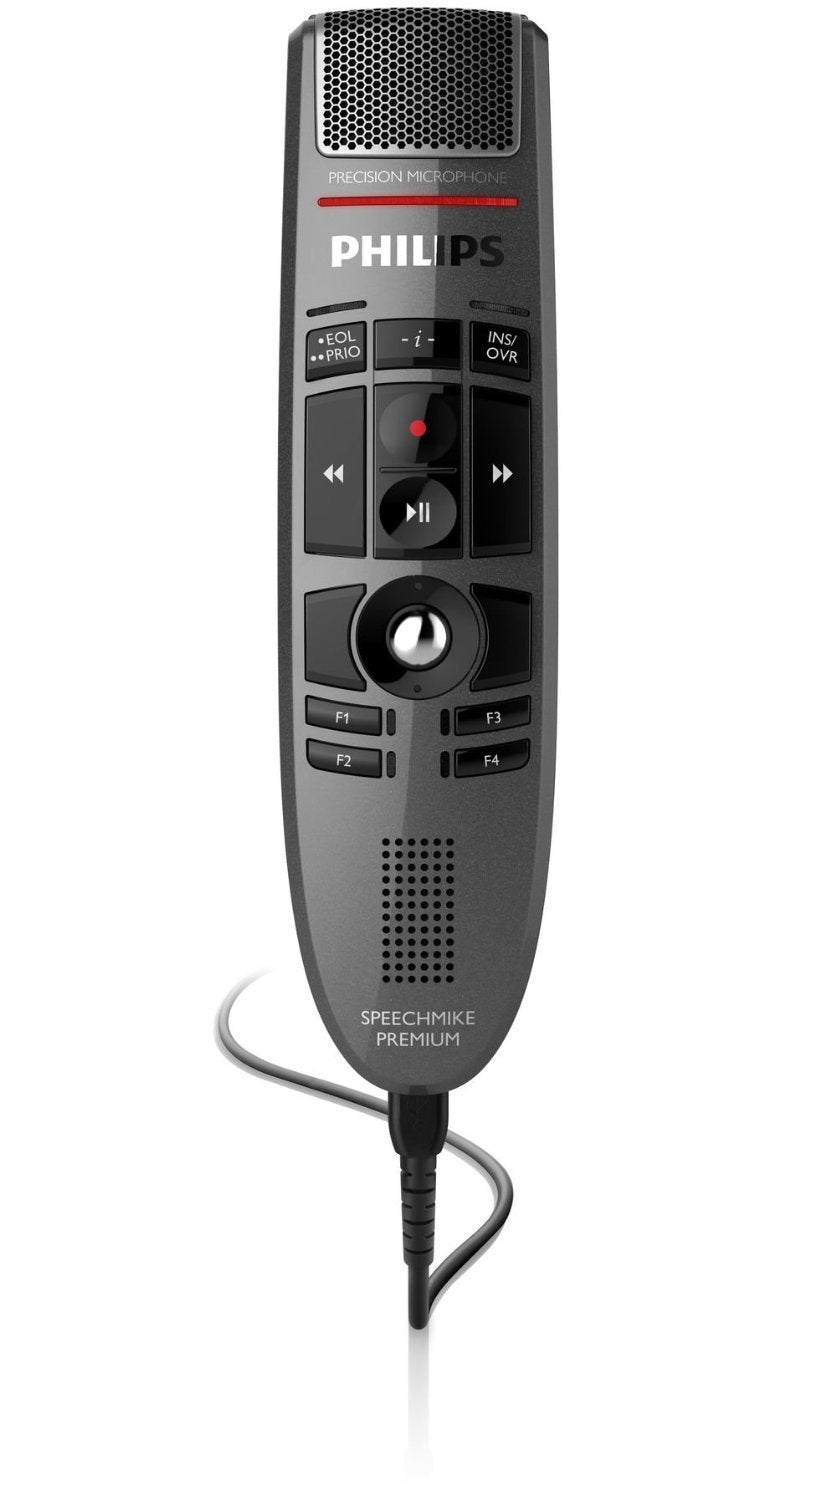 LFH3500 SpeechMike Premium USB dictation microphone